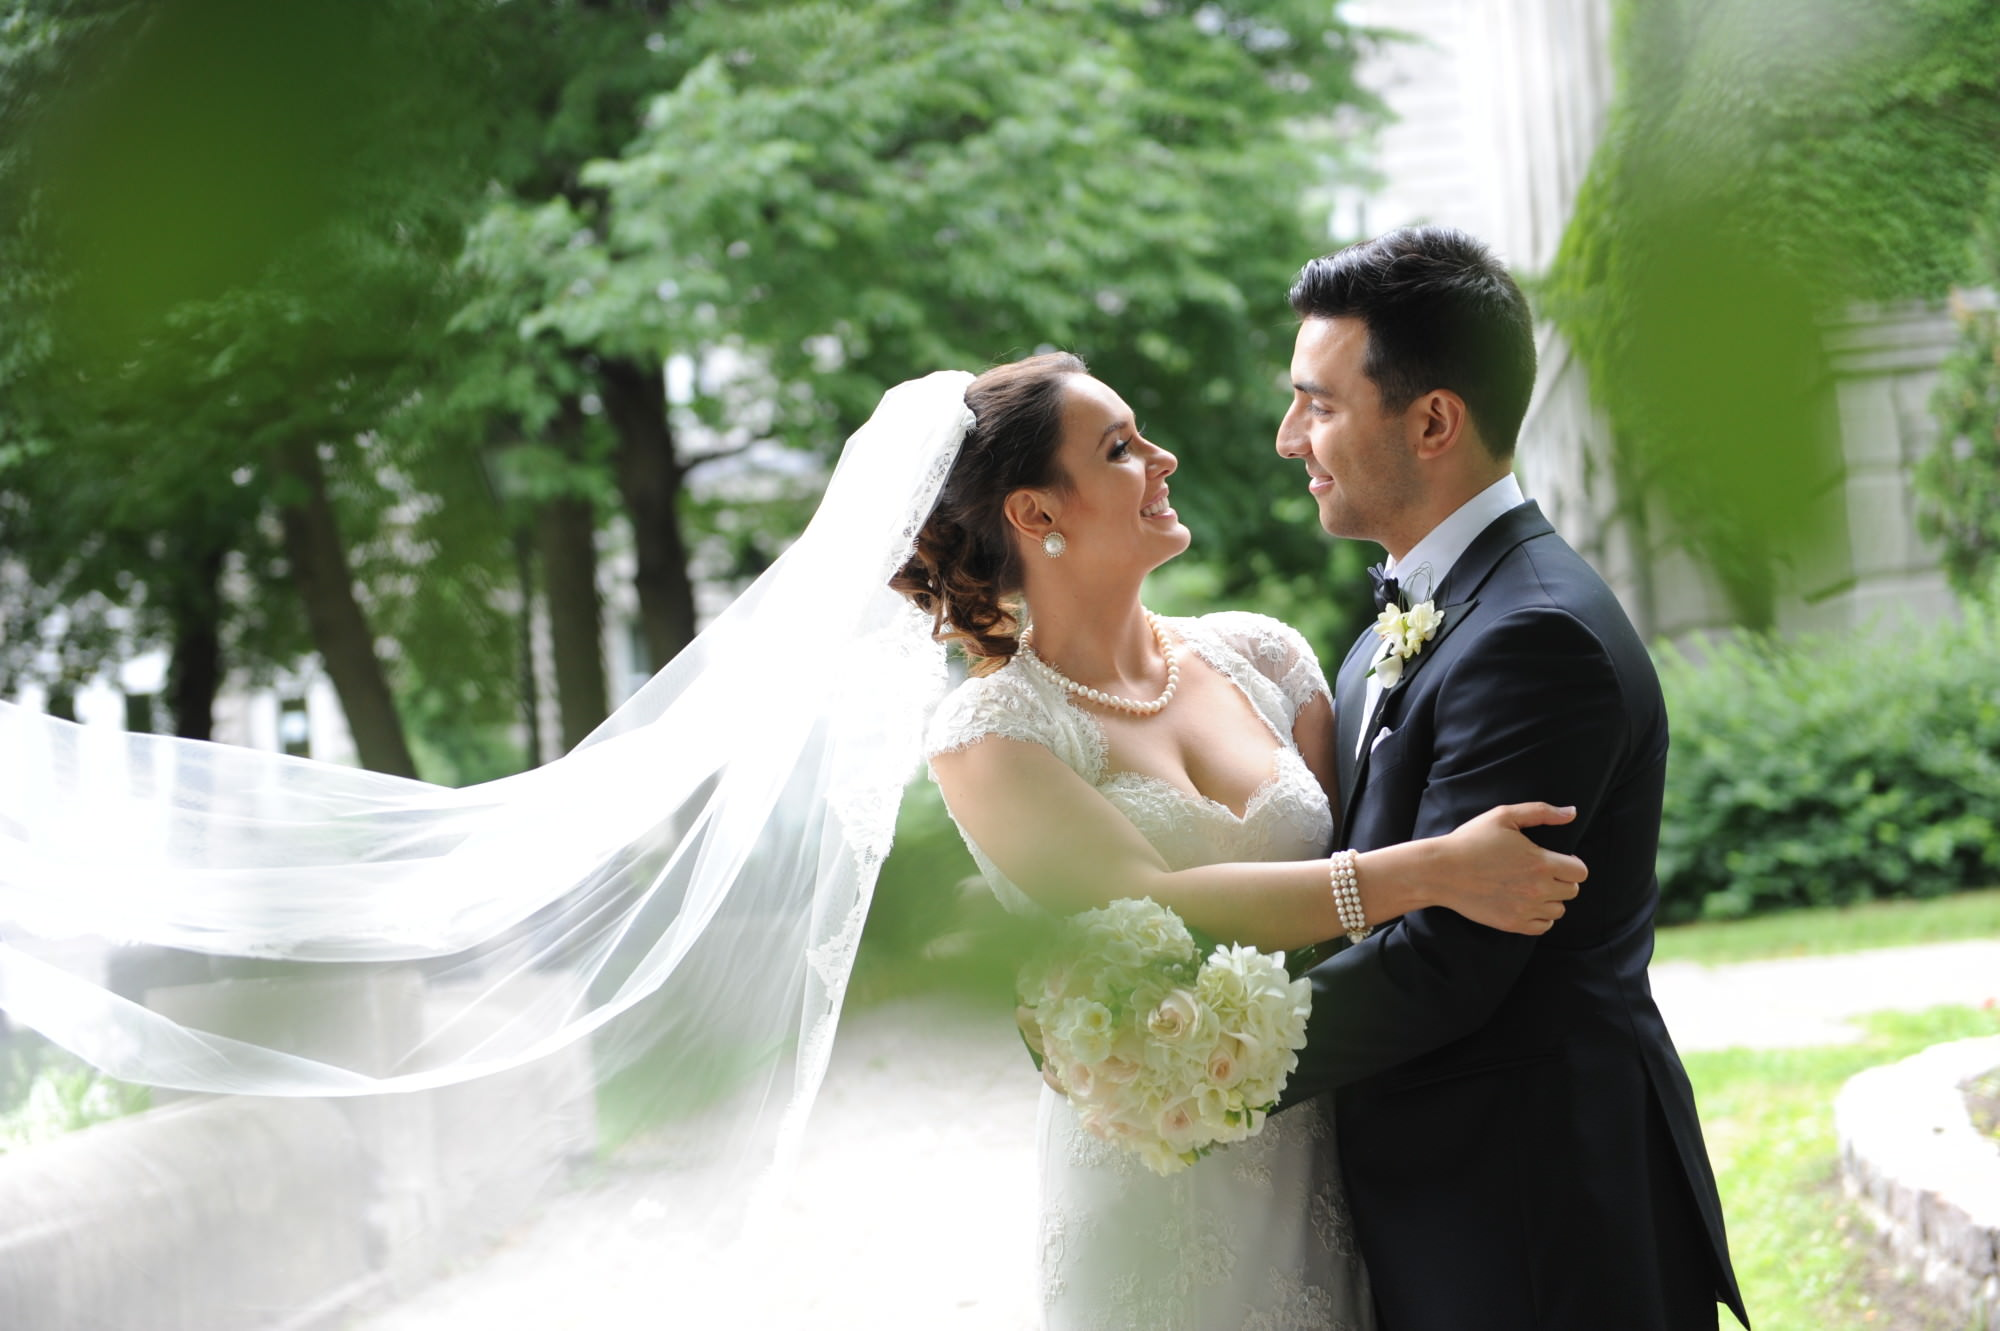 the importance of having a wedding photographer lavimage wedding photography montreal canadian wedding every bride must know tips tricks canada weddingbells canadian wedding photography montreal